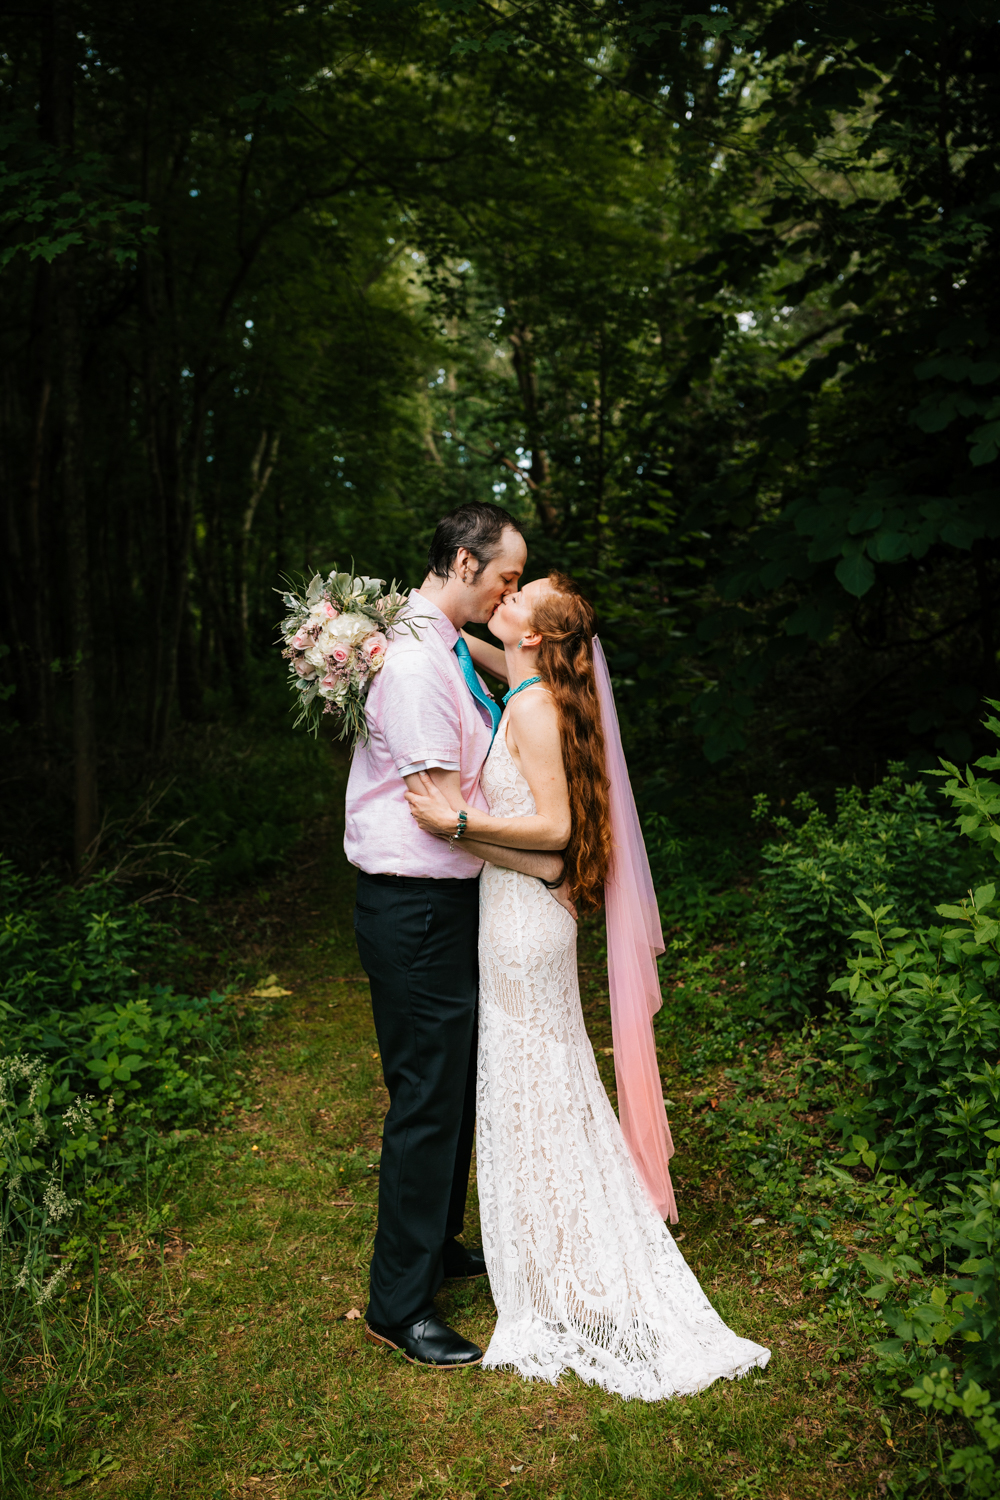 fun-advengturous-elopement-rhode-island-photographer-kinney-azalea-garden-north-kingstown-andrea-van-orsouw-photography-natural.jpg